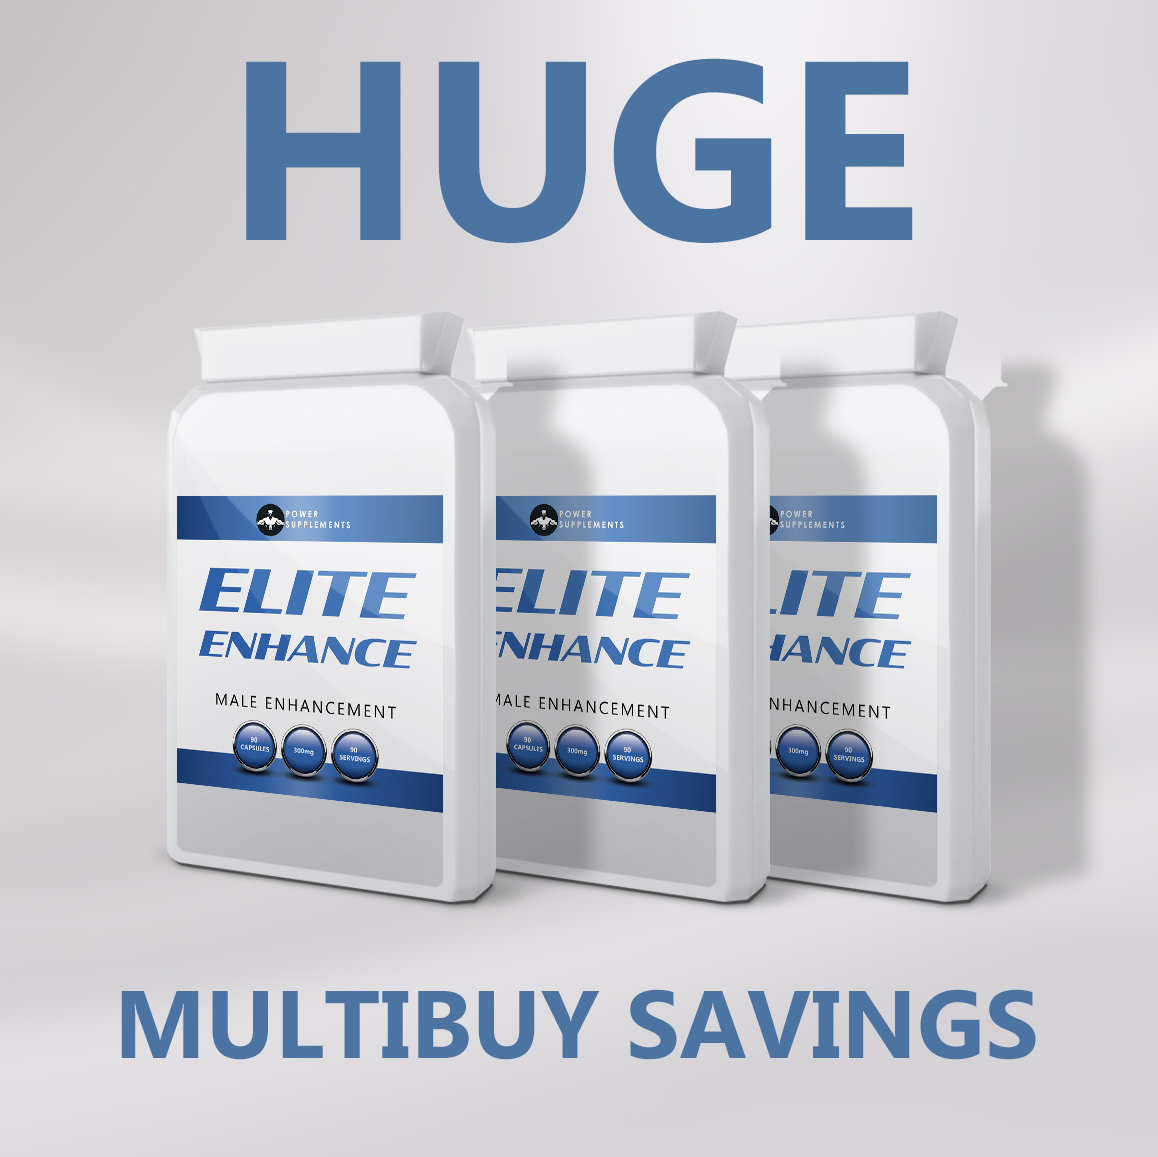 elite-enhance-MULTIBUY